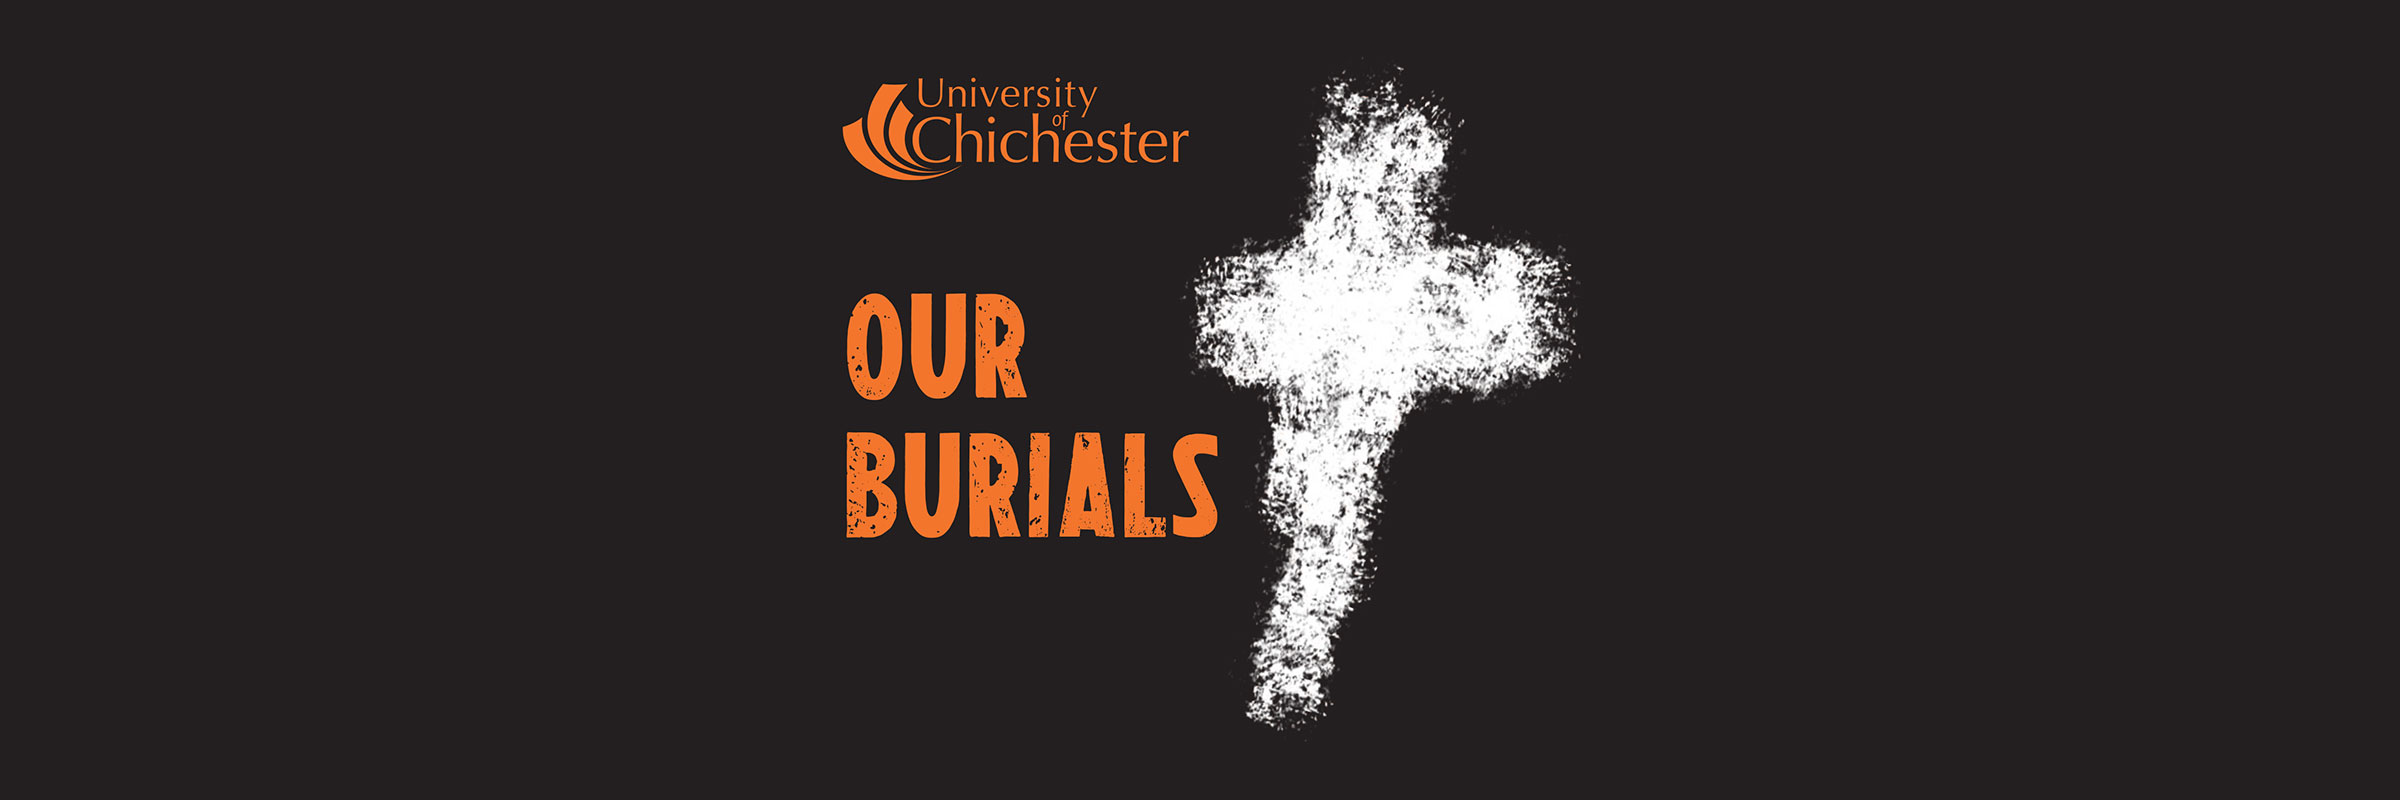 Our-Burials-Spring2019